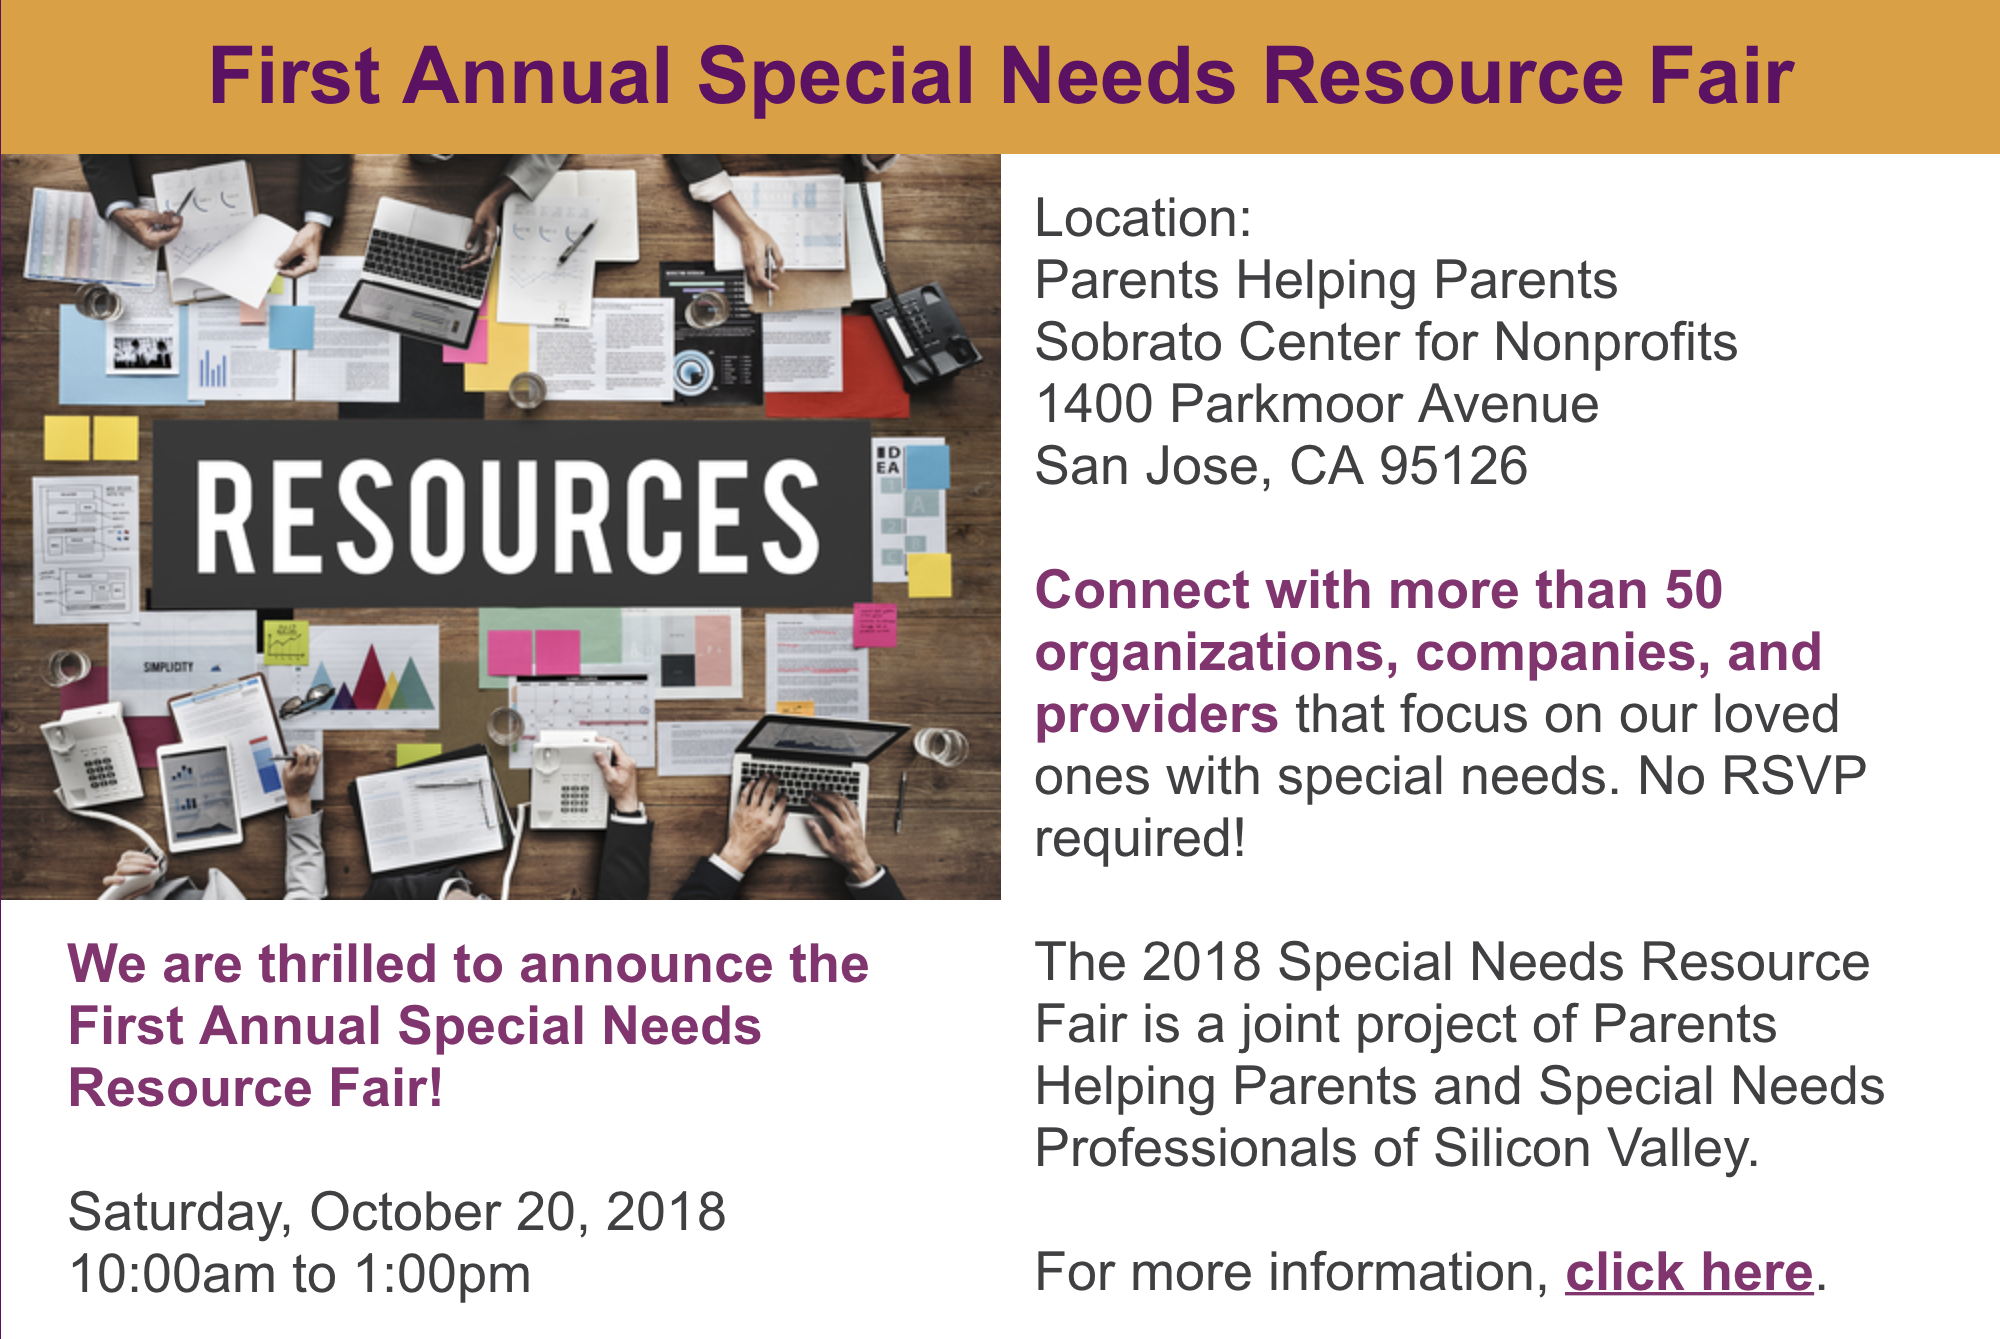 https://www.php.com/event/special-needs-resource-fair/